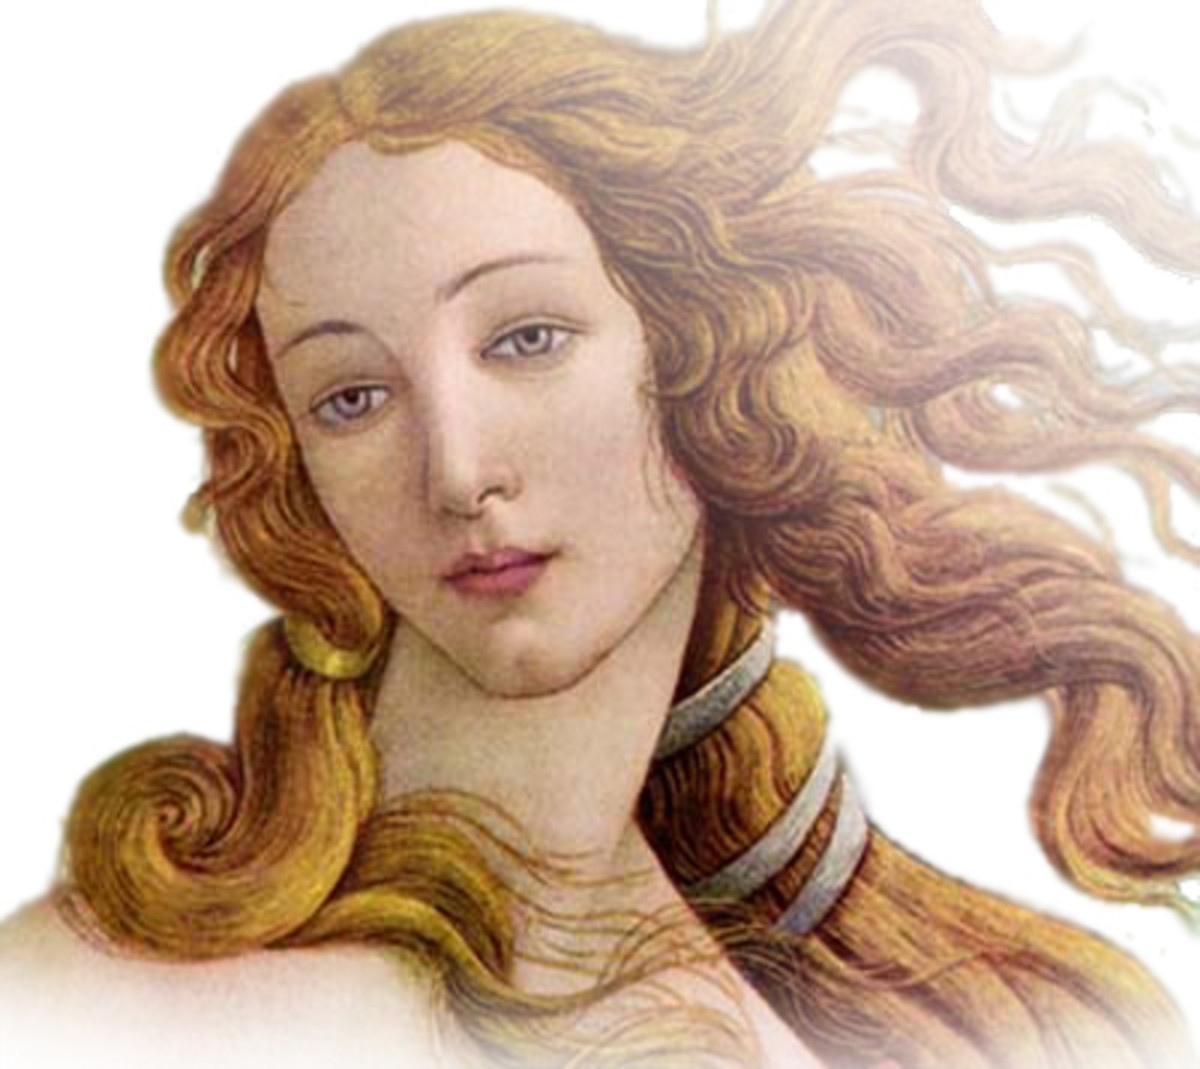 There are very few depictions of Aphrodite where she is not naked. She was believed to be a red head, so here is one depiction that is not indecent for hubpages standards.